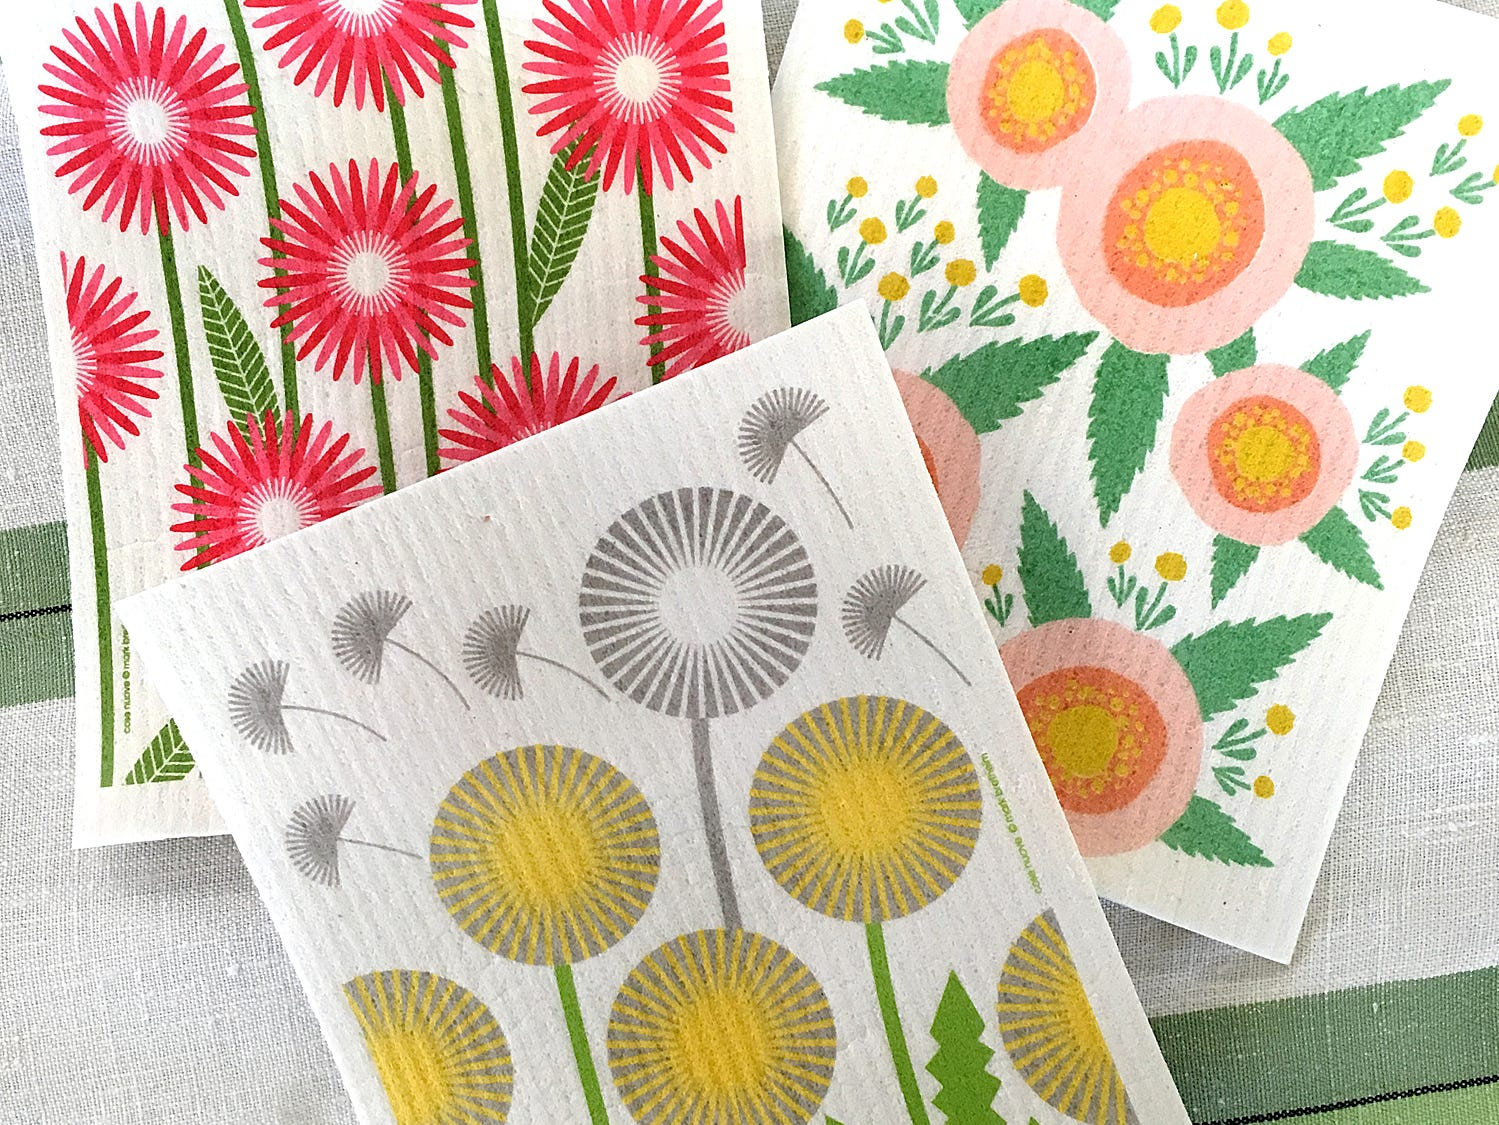 Dish cloths are another simple way to inject some spring into your home decor. This Swedish Dish Cloths are $6.50 at Green Daffodil in Ferndale.